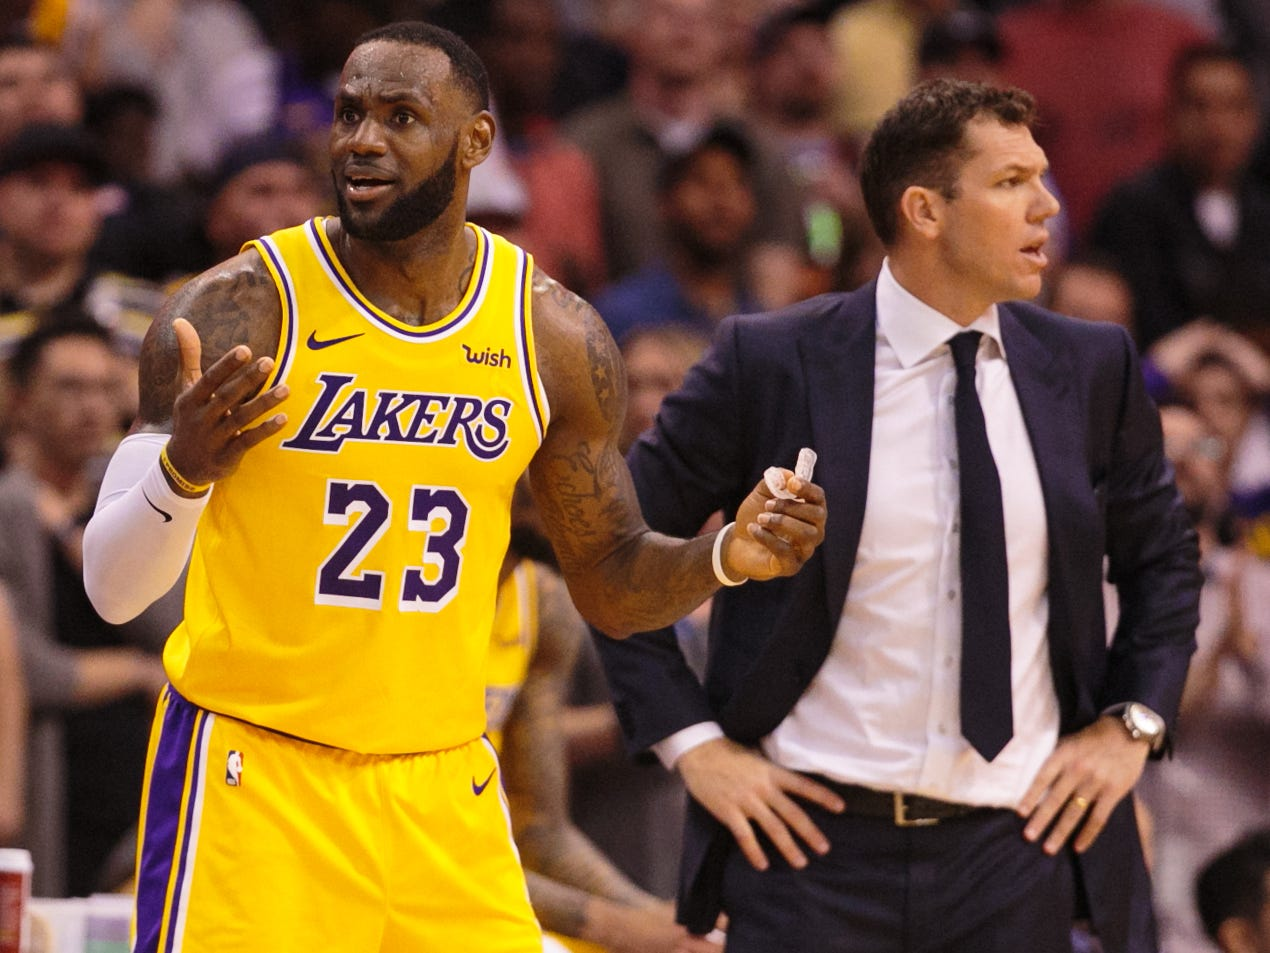 March 2, 2019: LeBron James and Lakers coach Luke Walton look to the officials for answers after a call during the fourth quarter against the Suns in Phoenix.